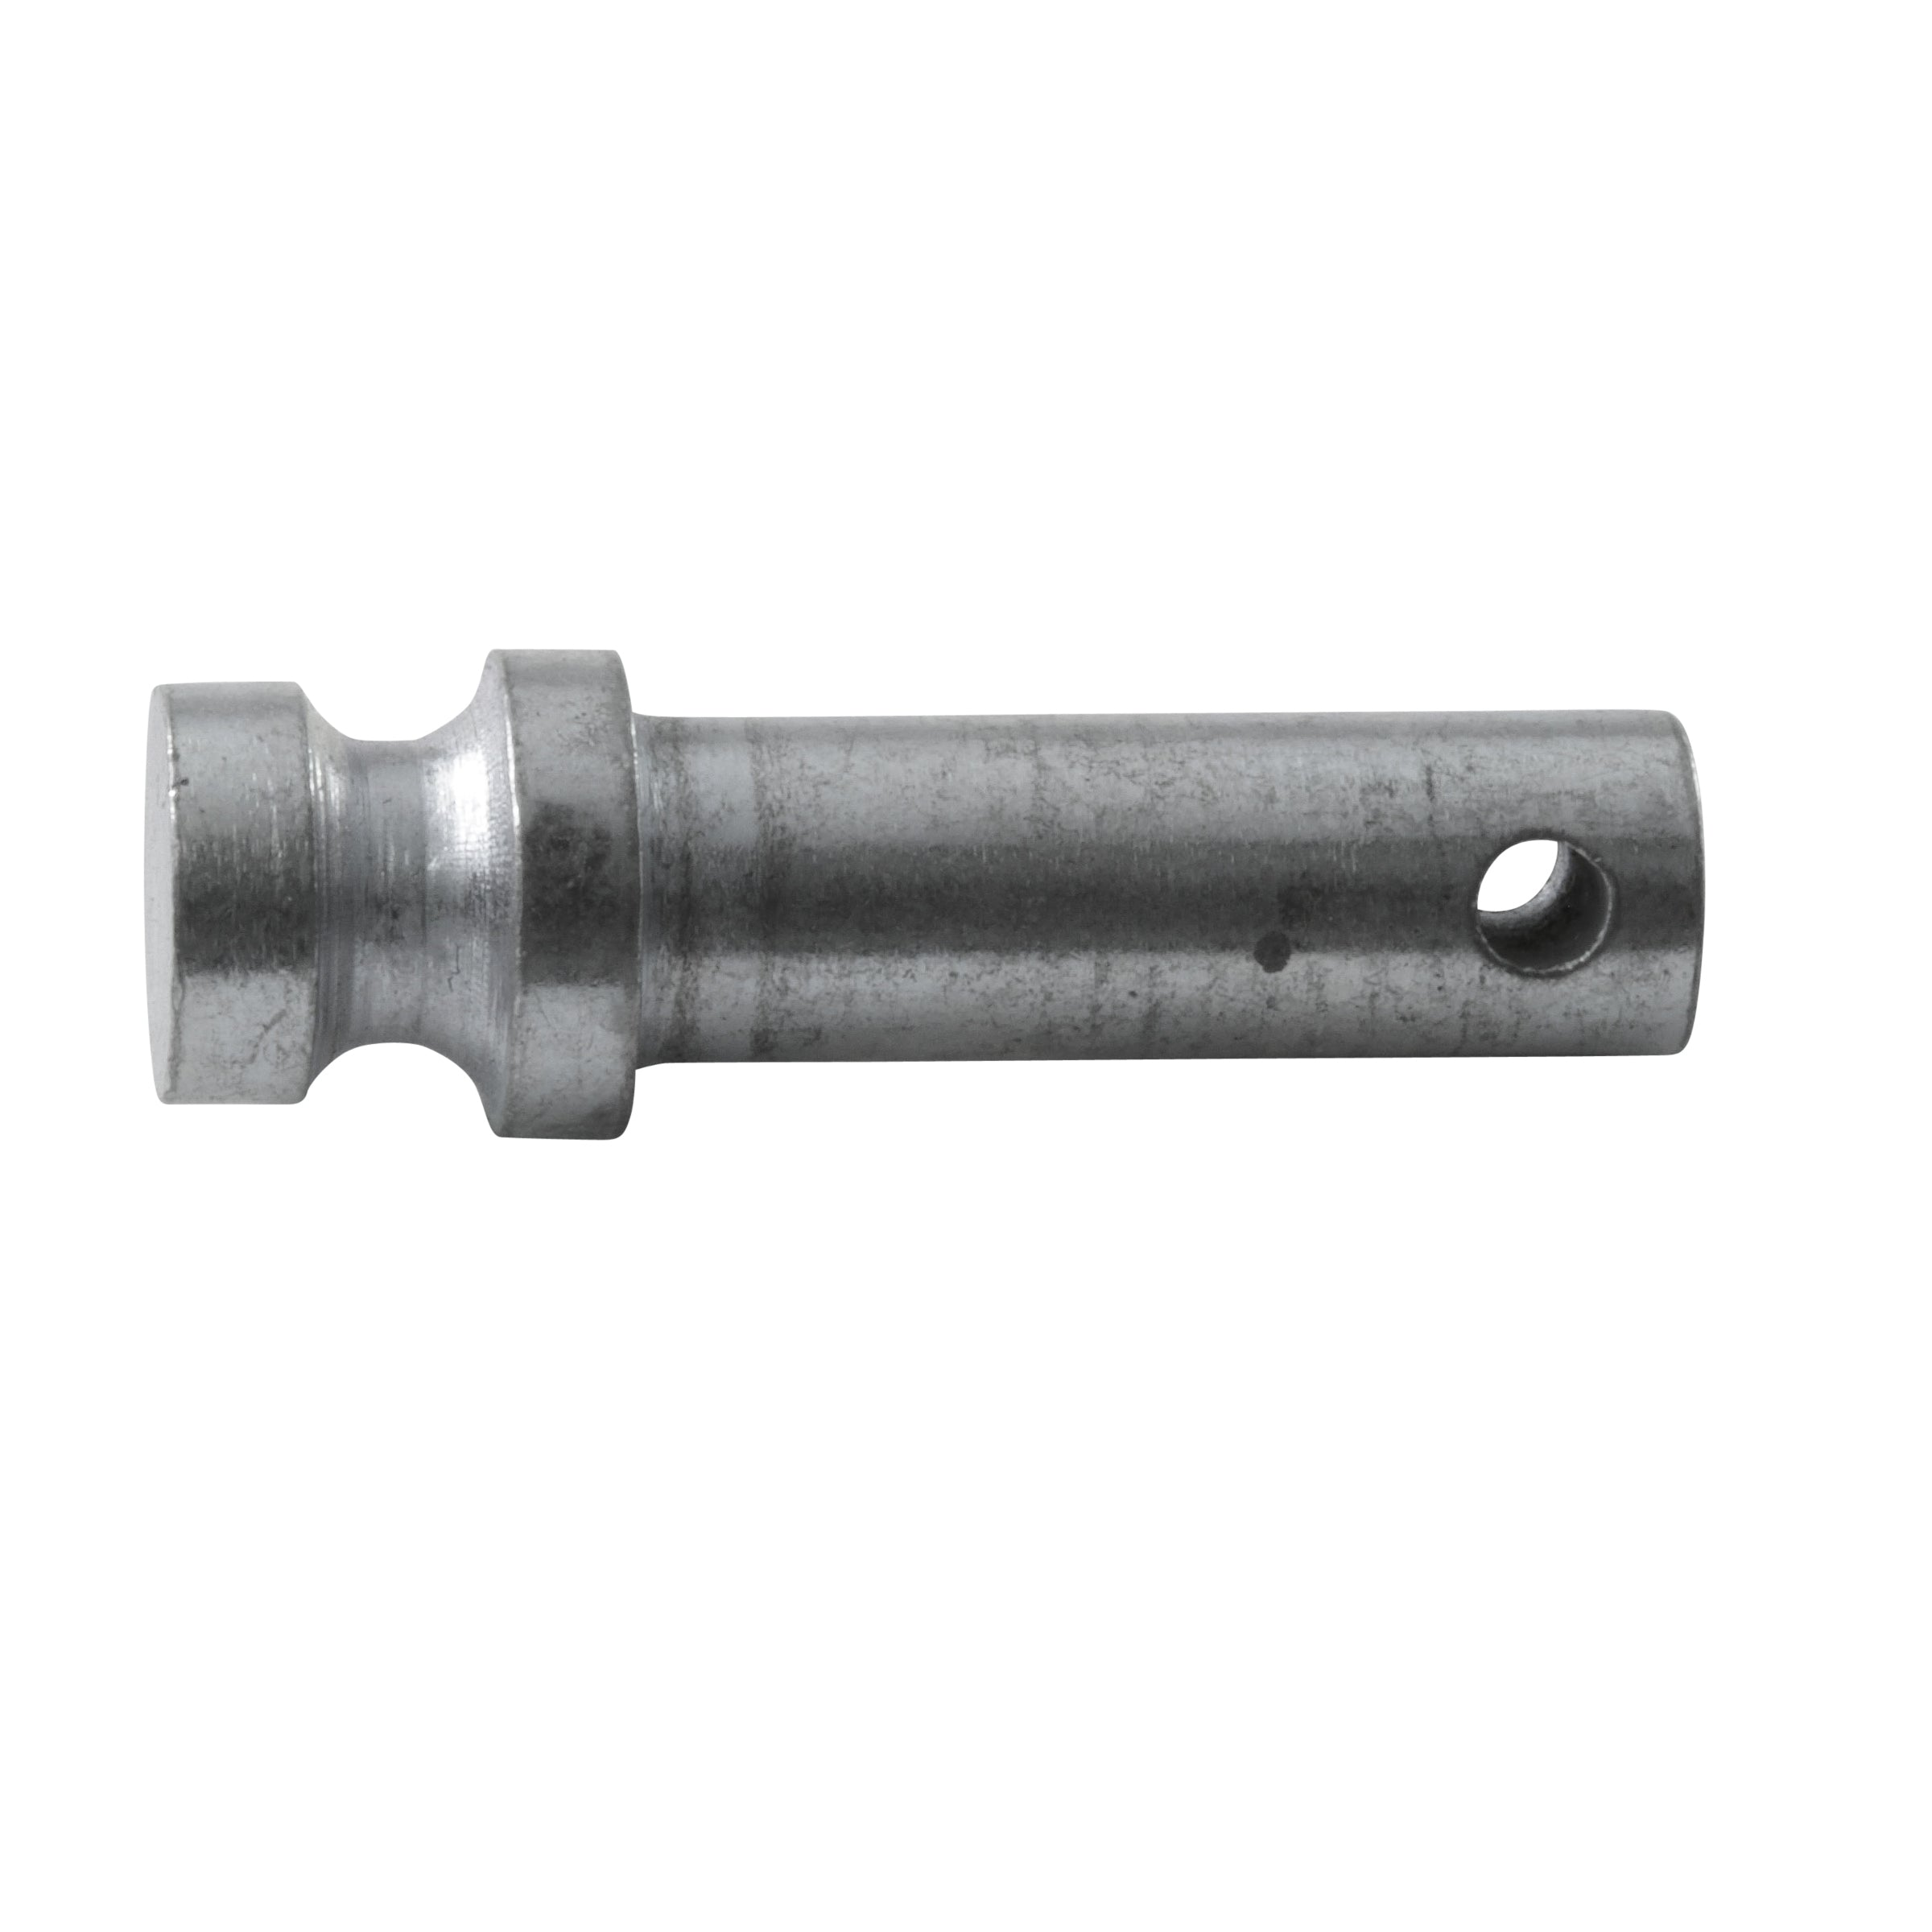 Clutch and Brake Pedal Pin